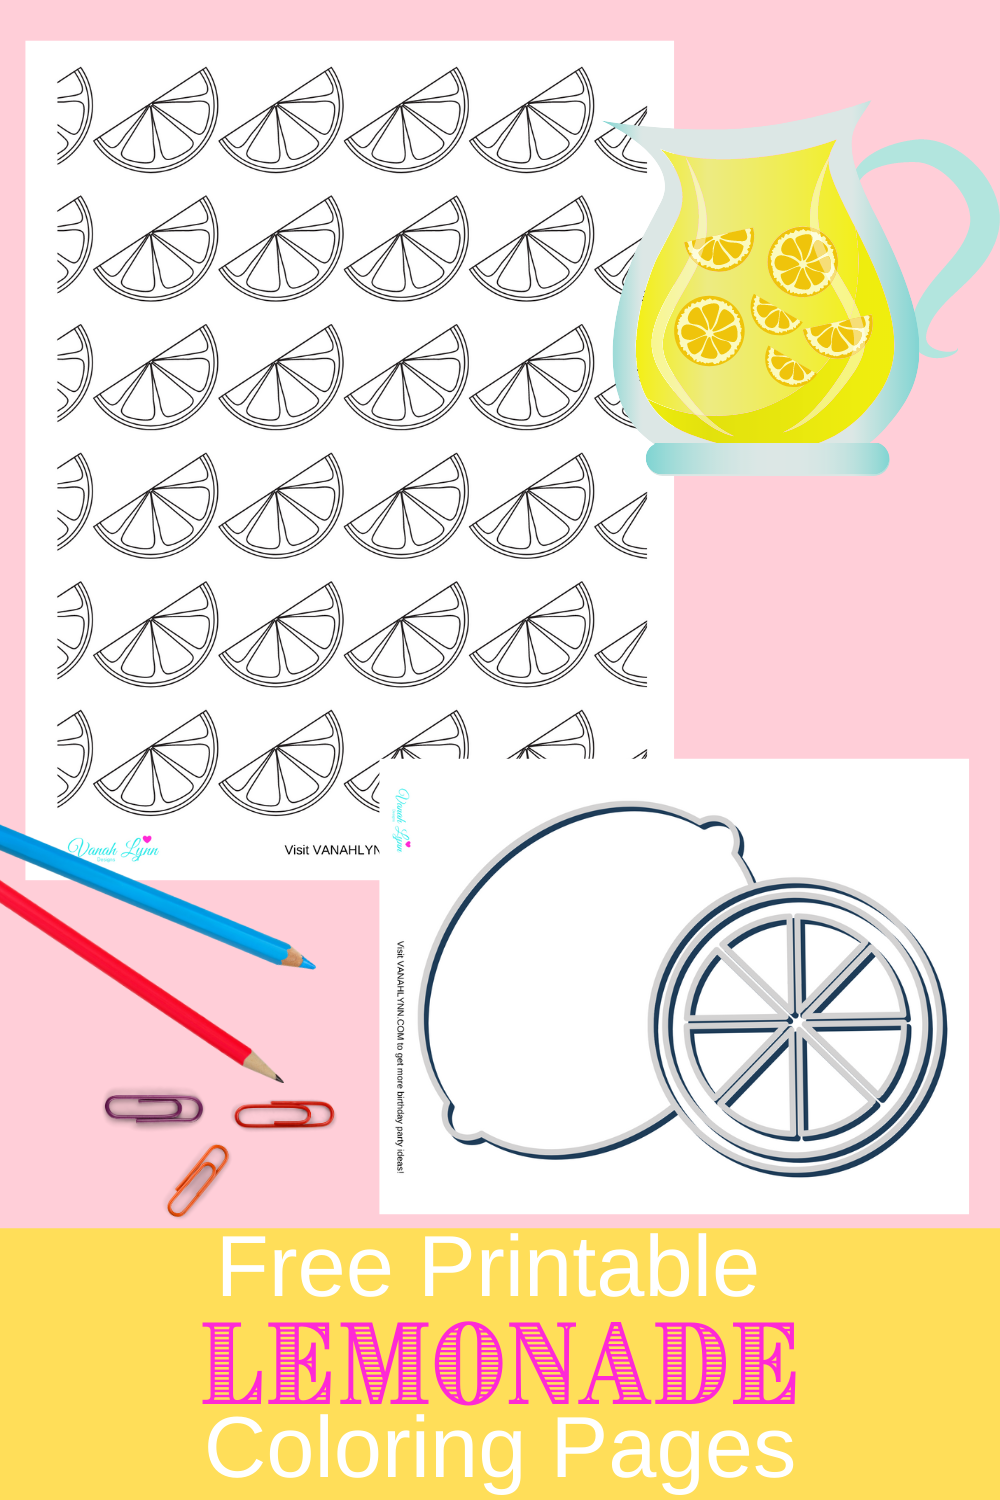 lemon coloring sheets for a little girl's birthday party